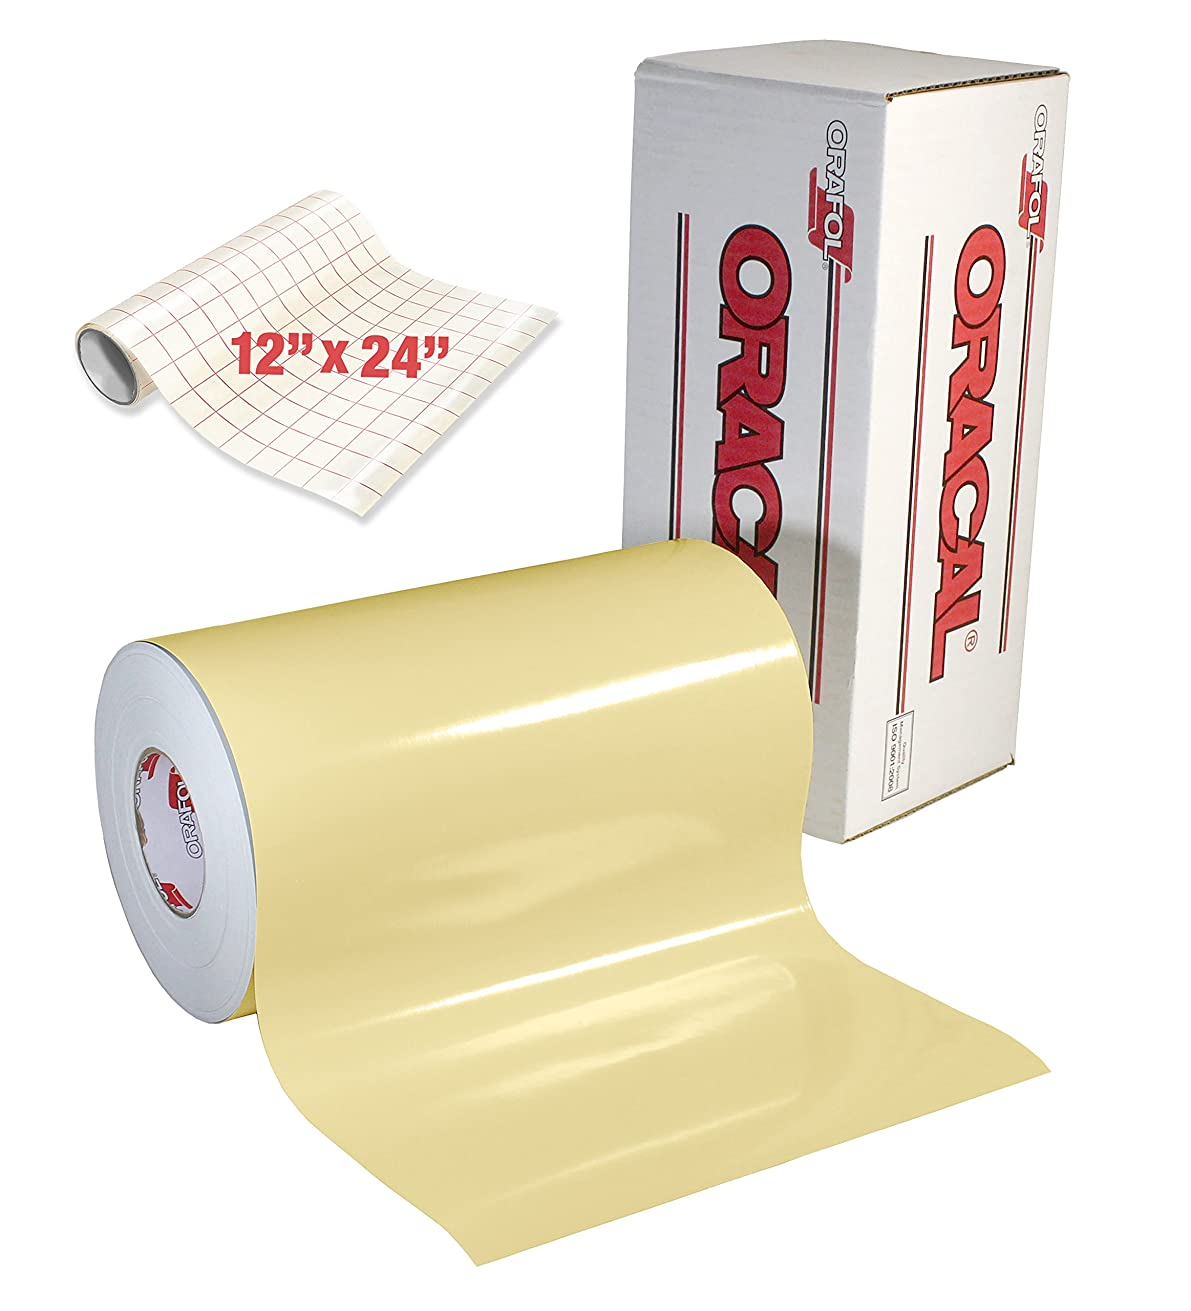 ORACAL 651 Gloss Cream Adhesive Craft Vinyl for Cameo, Cricut & Silhouette Including Free Roll of Clear Transfer Paper (50ft x 12